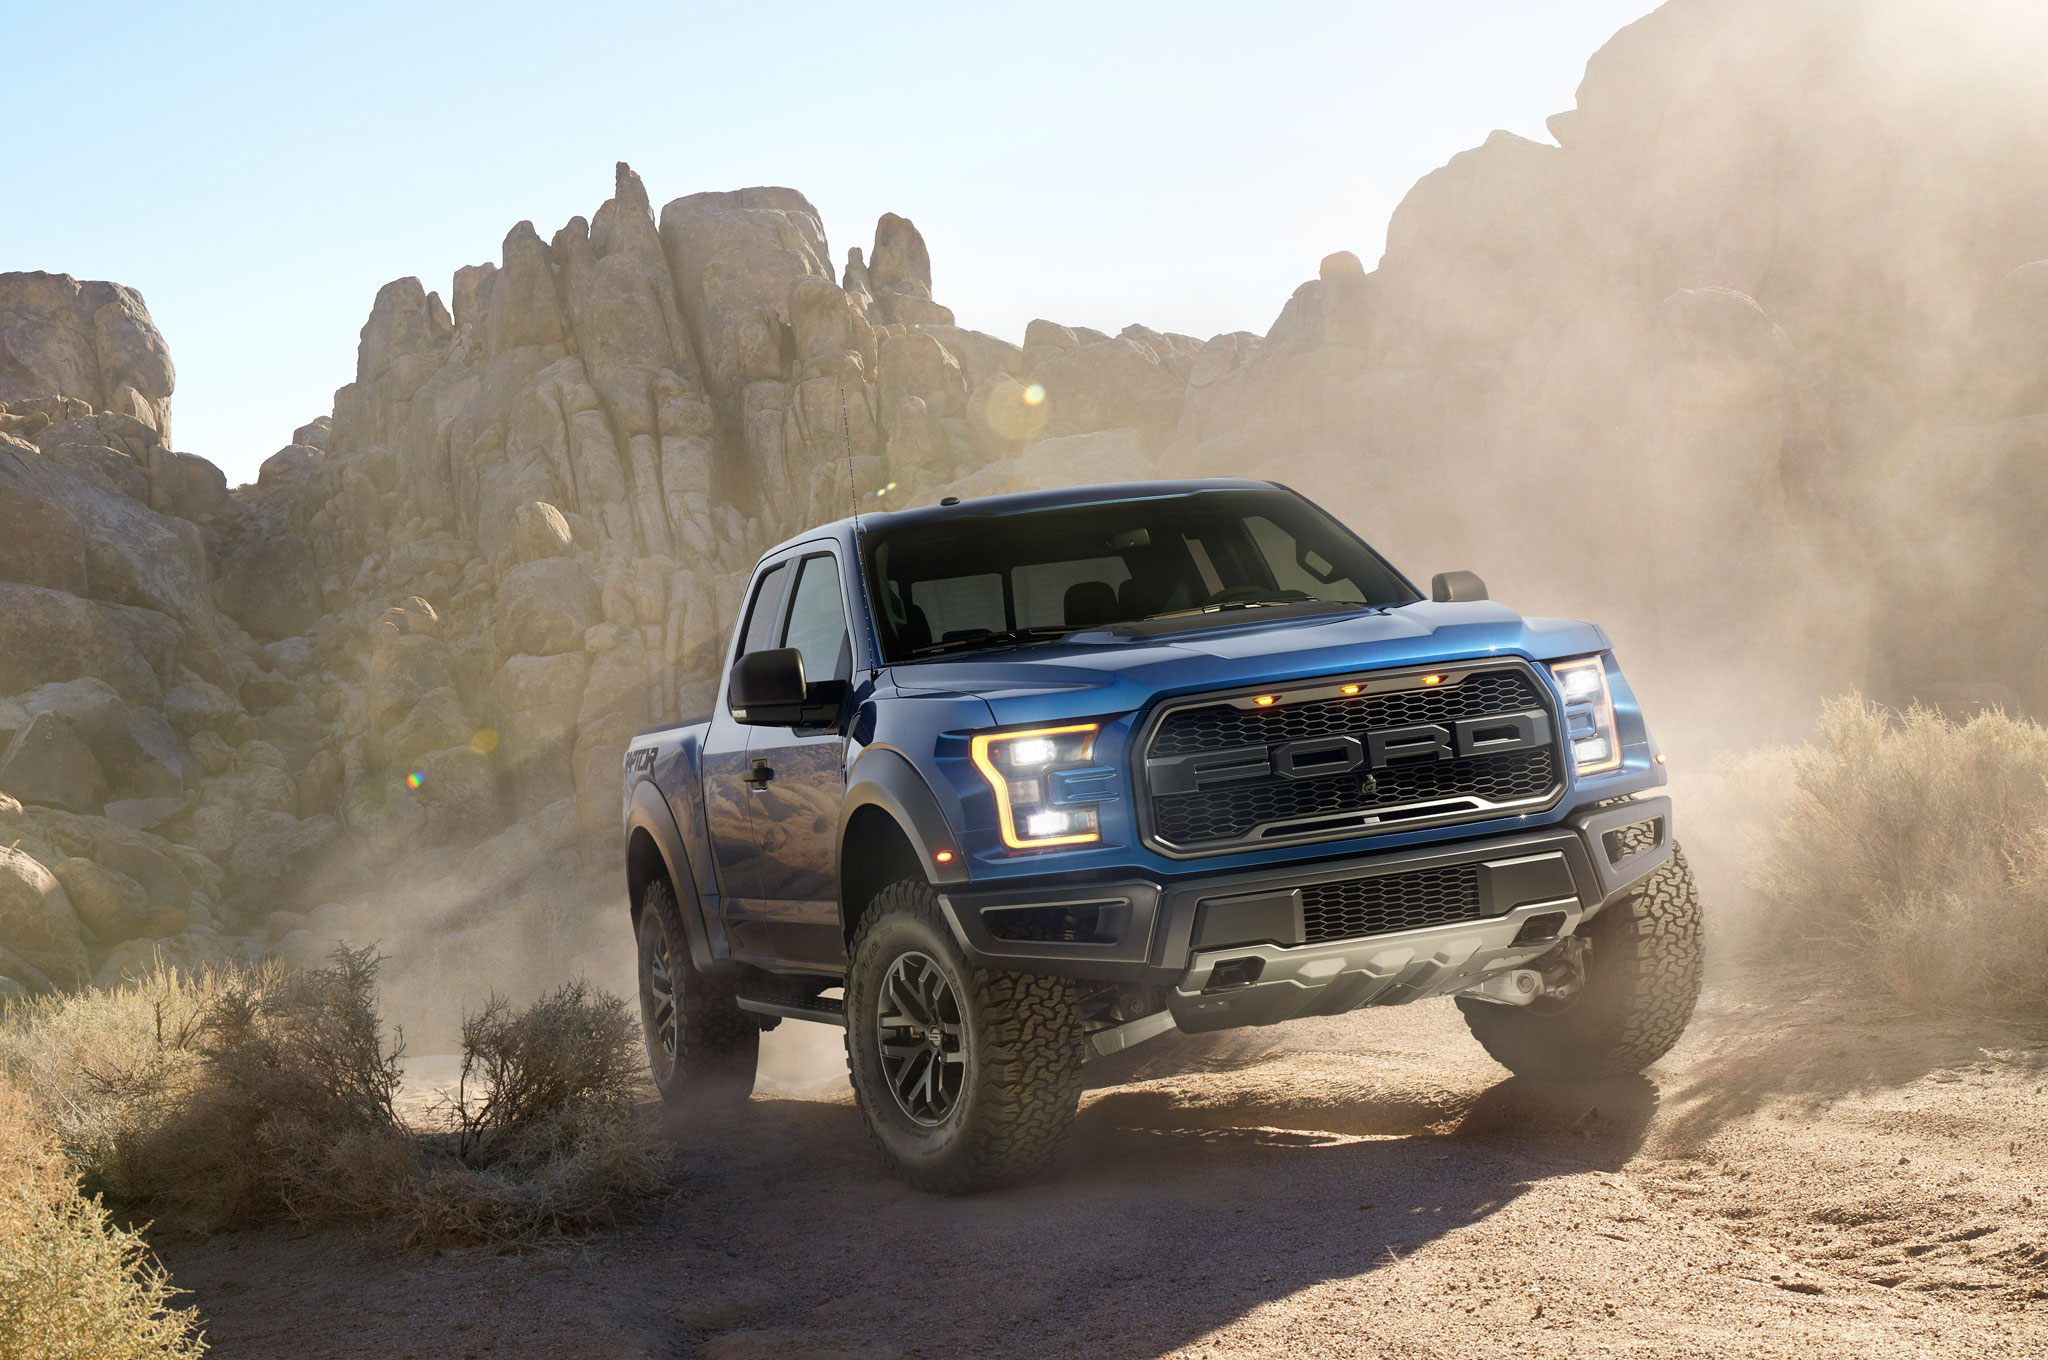 2017 ford f 150 raptor officially rated at 450 hp automobile kelly pleskot voltagebd Choice Image